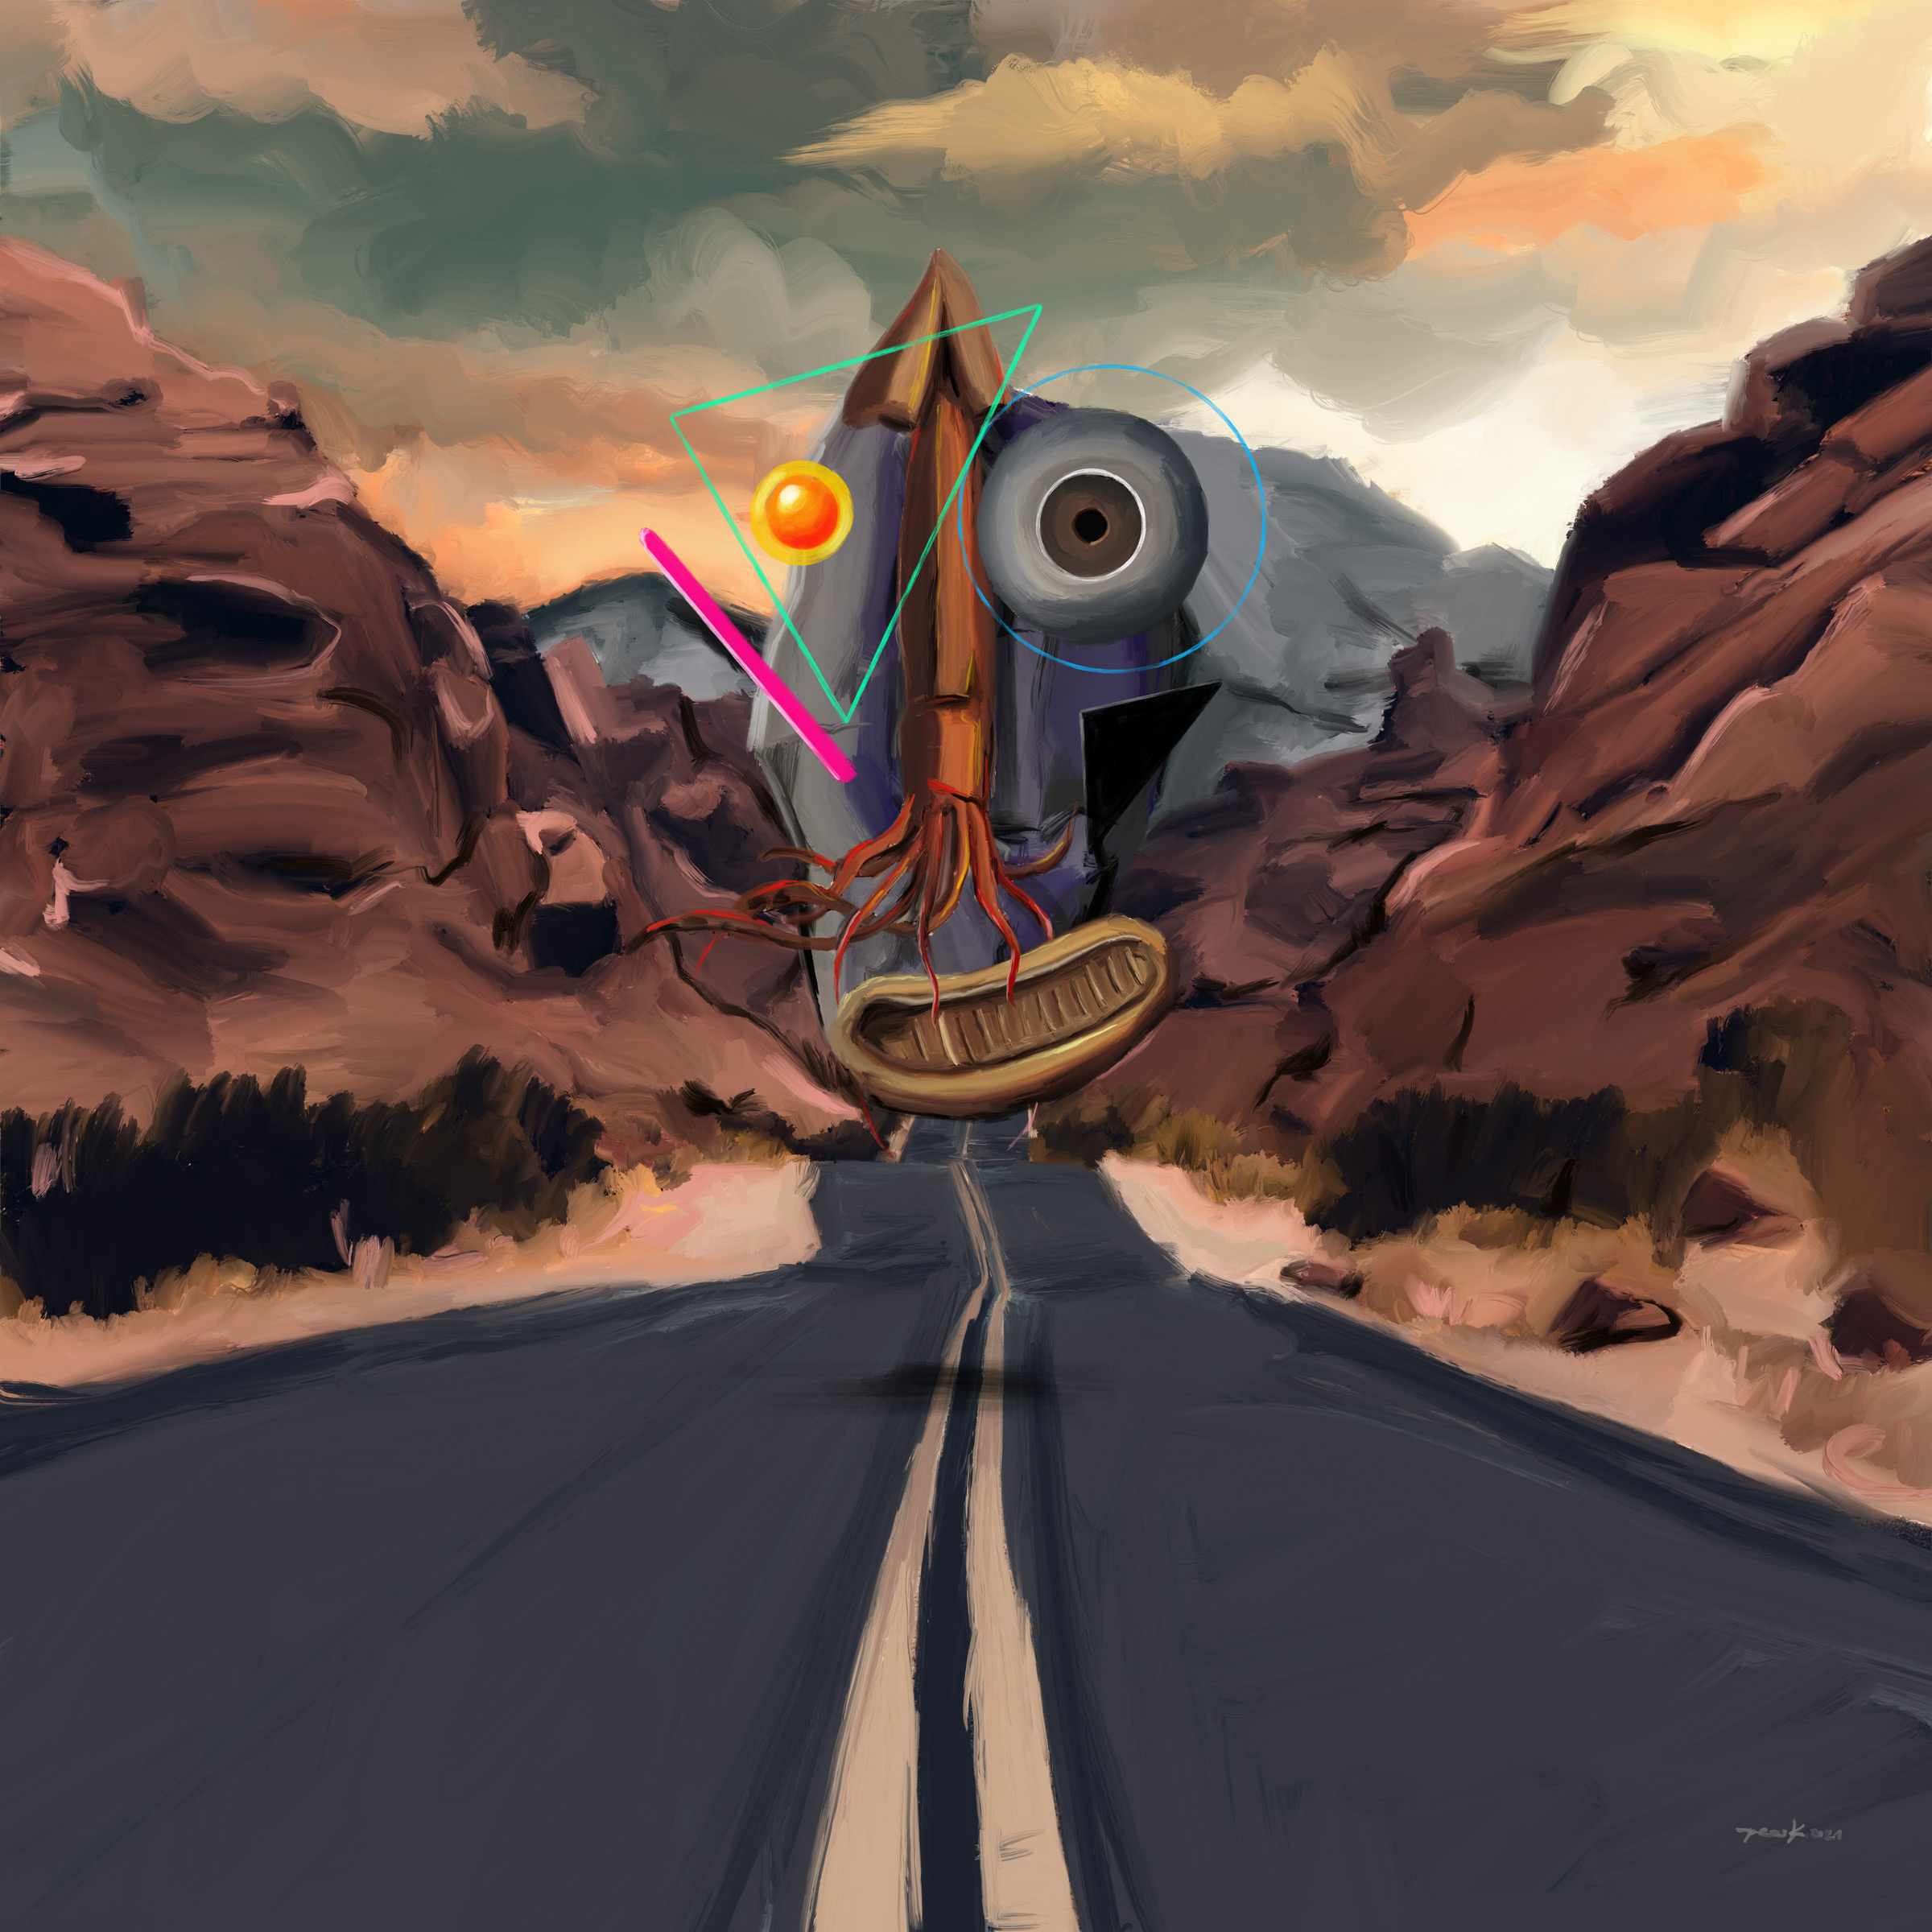 The Unknown On His Way